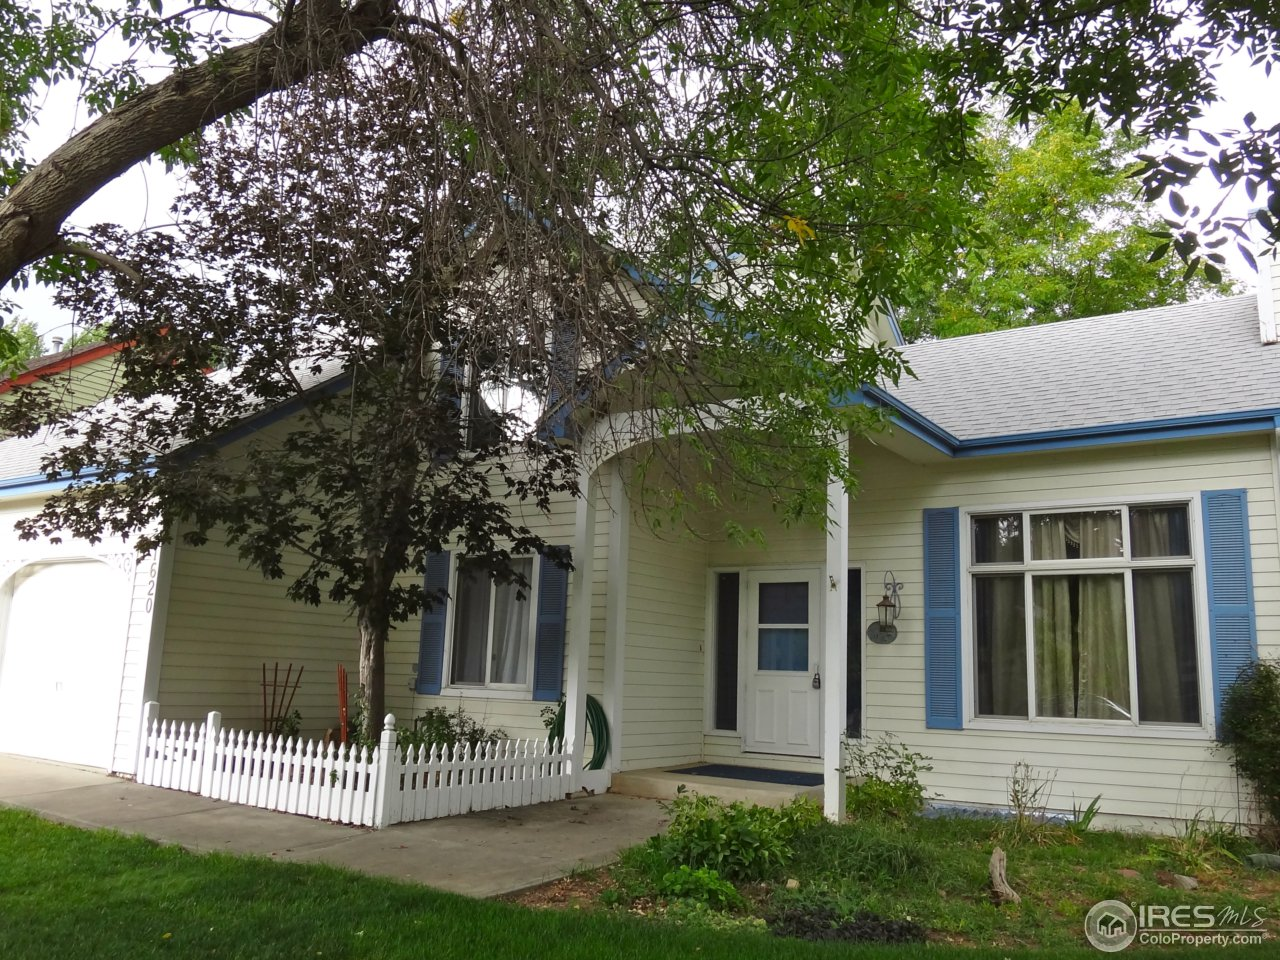 Perfect west central Fort Collins home in a victorian style neighborhood. Brand new carpet, large eat in kitchen with island & pull out drawers in cabinets. Vaulted ceiling in living room with fireplace. Separate dining room. Family room has built in shelves. Upstairs master with full bath & large storage area. Backyard has beautiful trees and patio, perfect for entertaining. Great house to build memories in with your family. All reasonable offers will be considered.